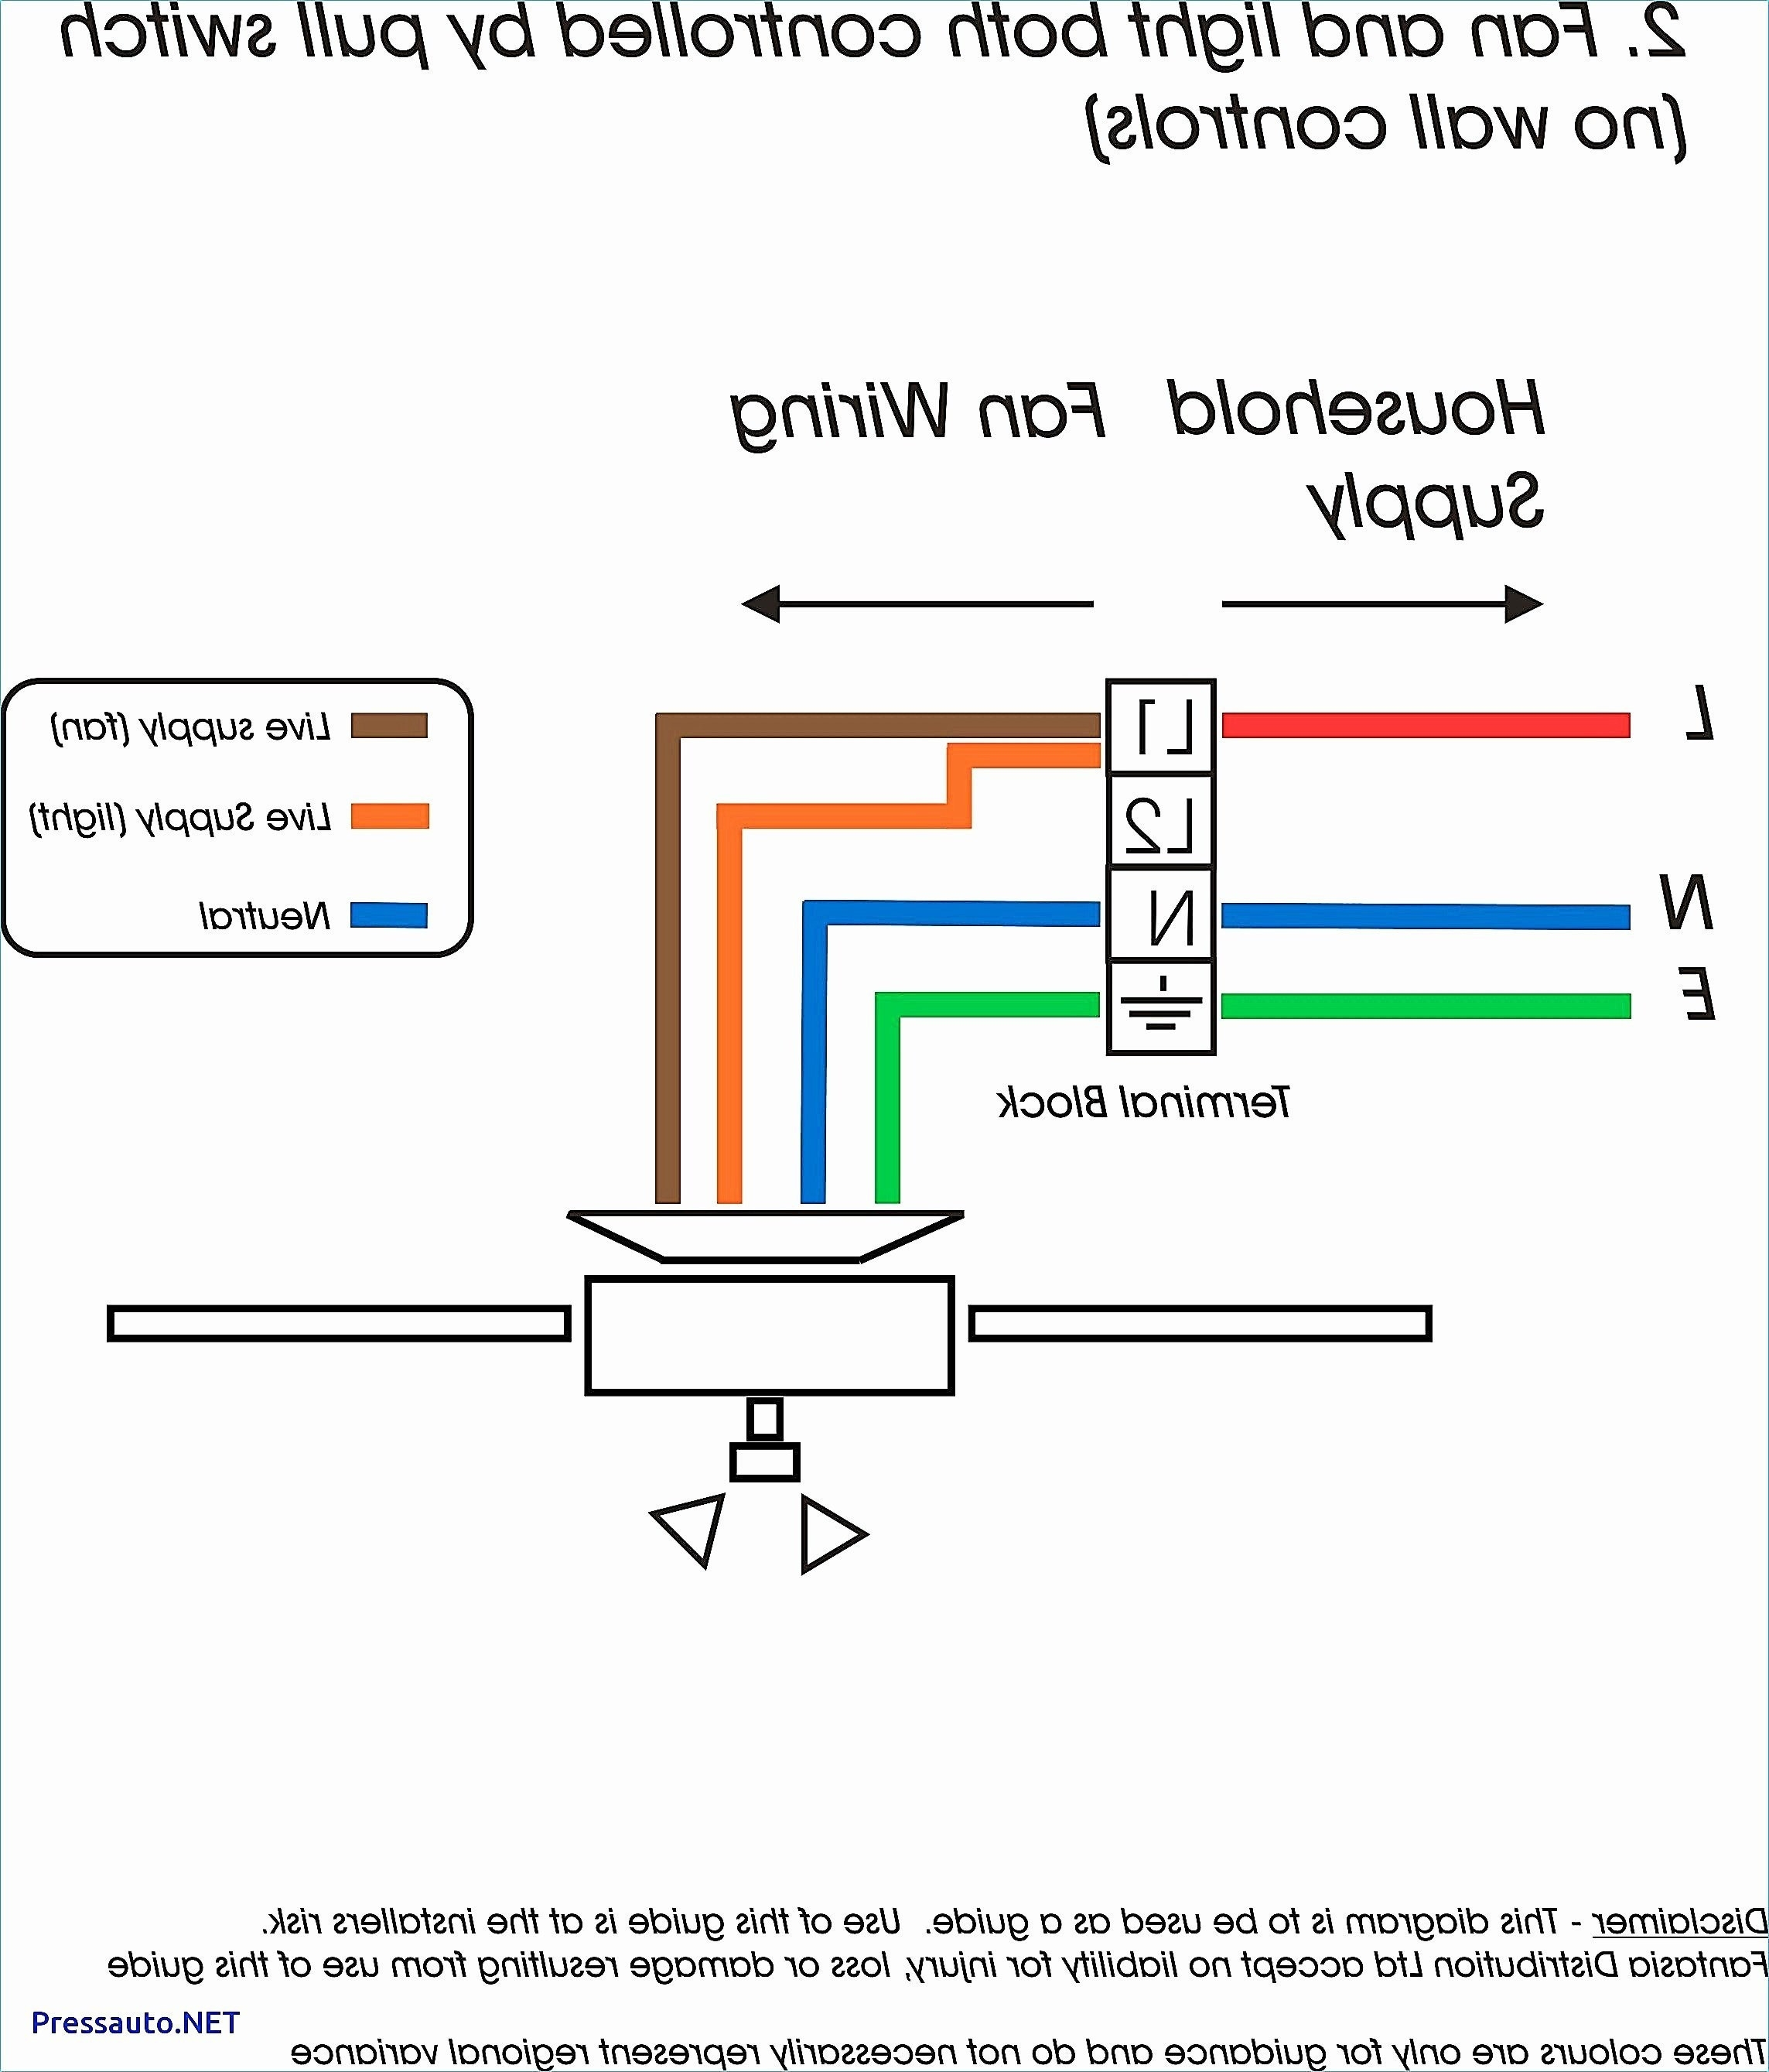 underfloor heating thermostat wiring diagram - wiring diagram for underfloor  heating thermostat best wiring diagram for